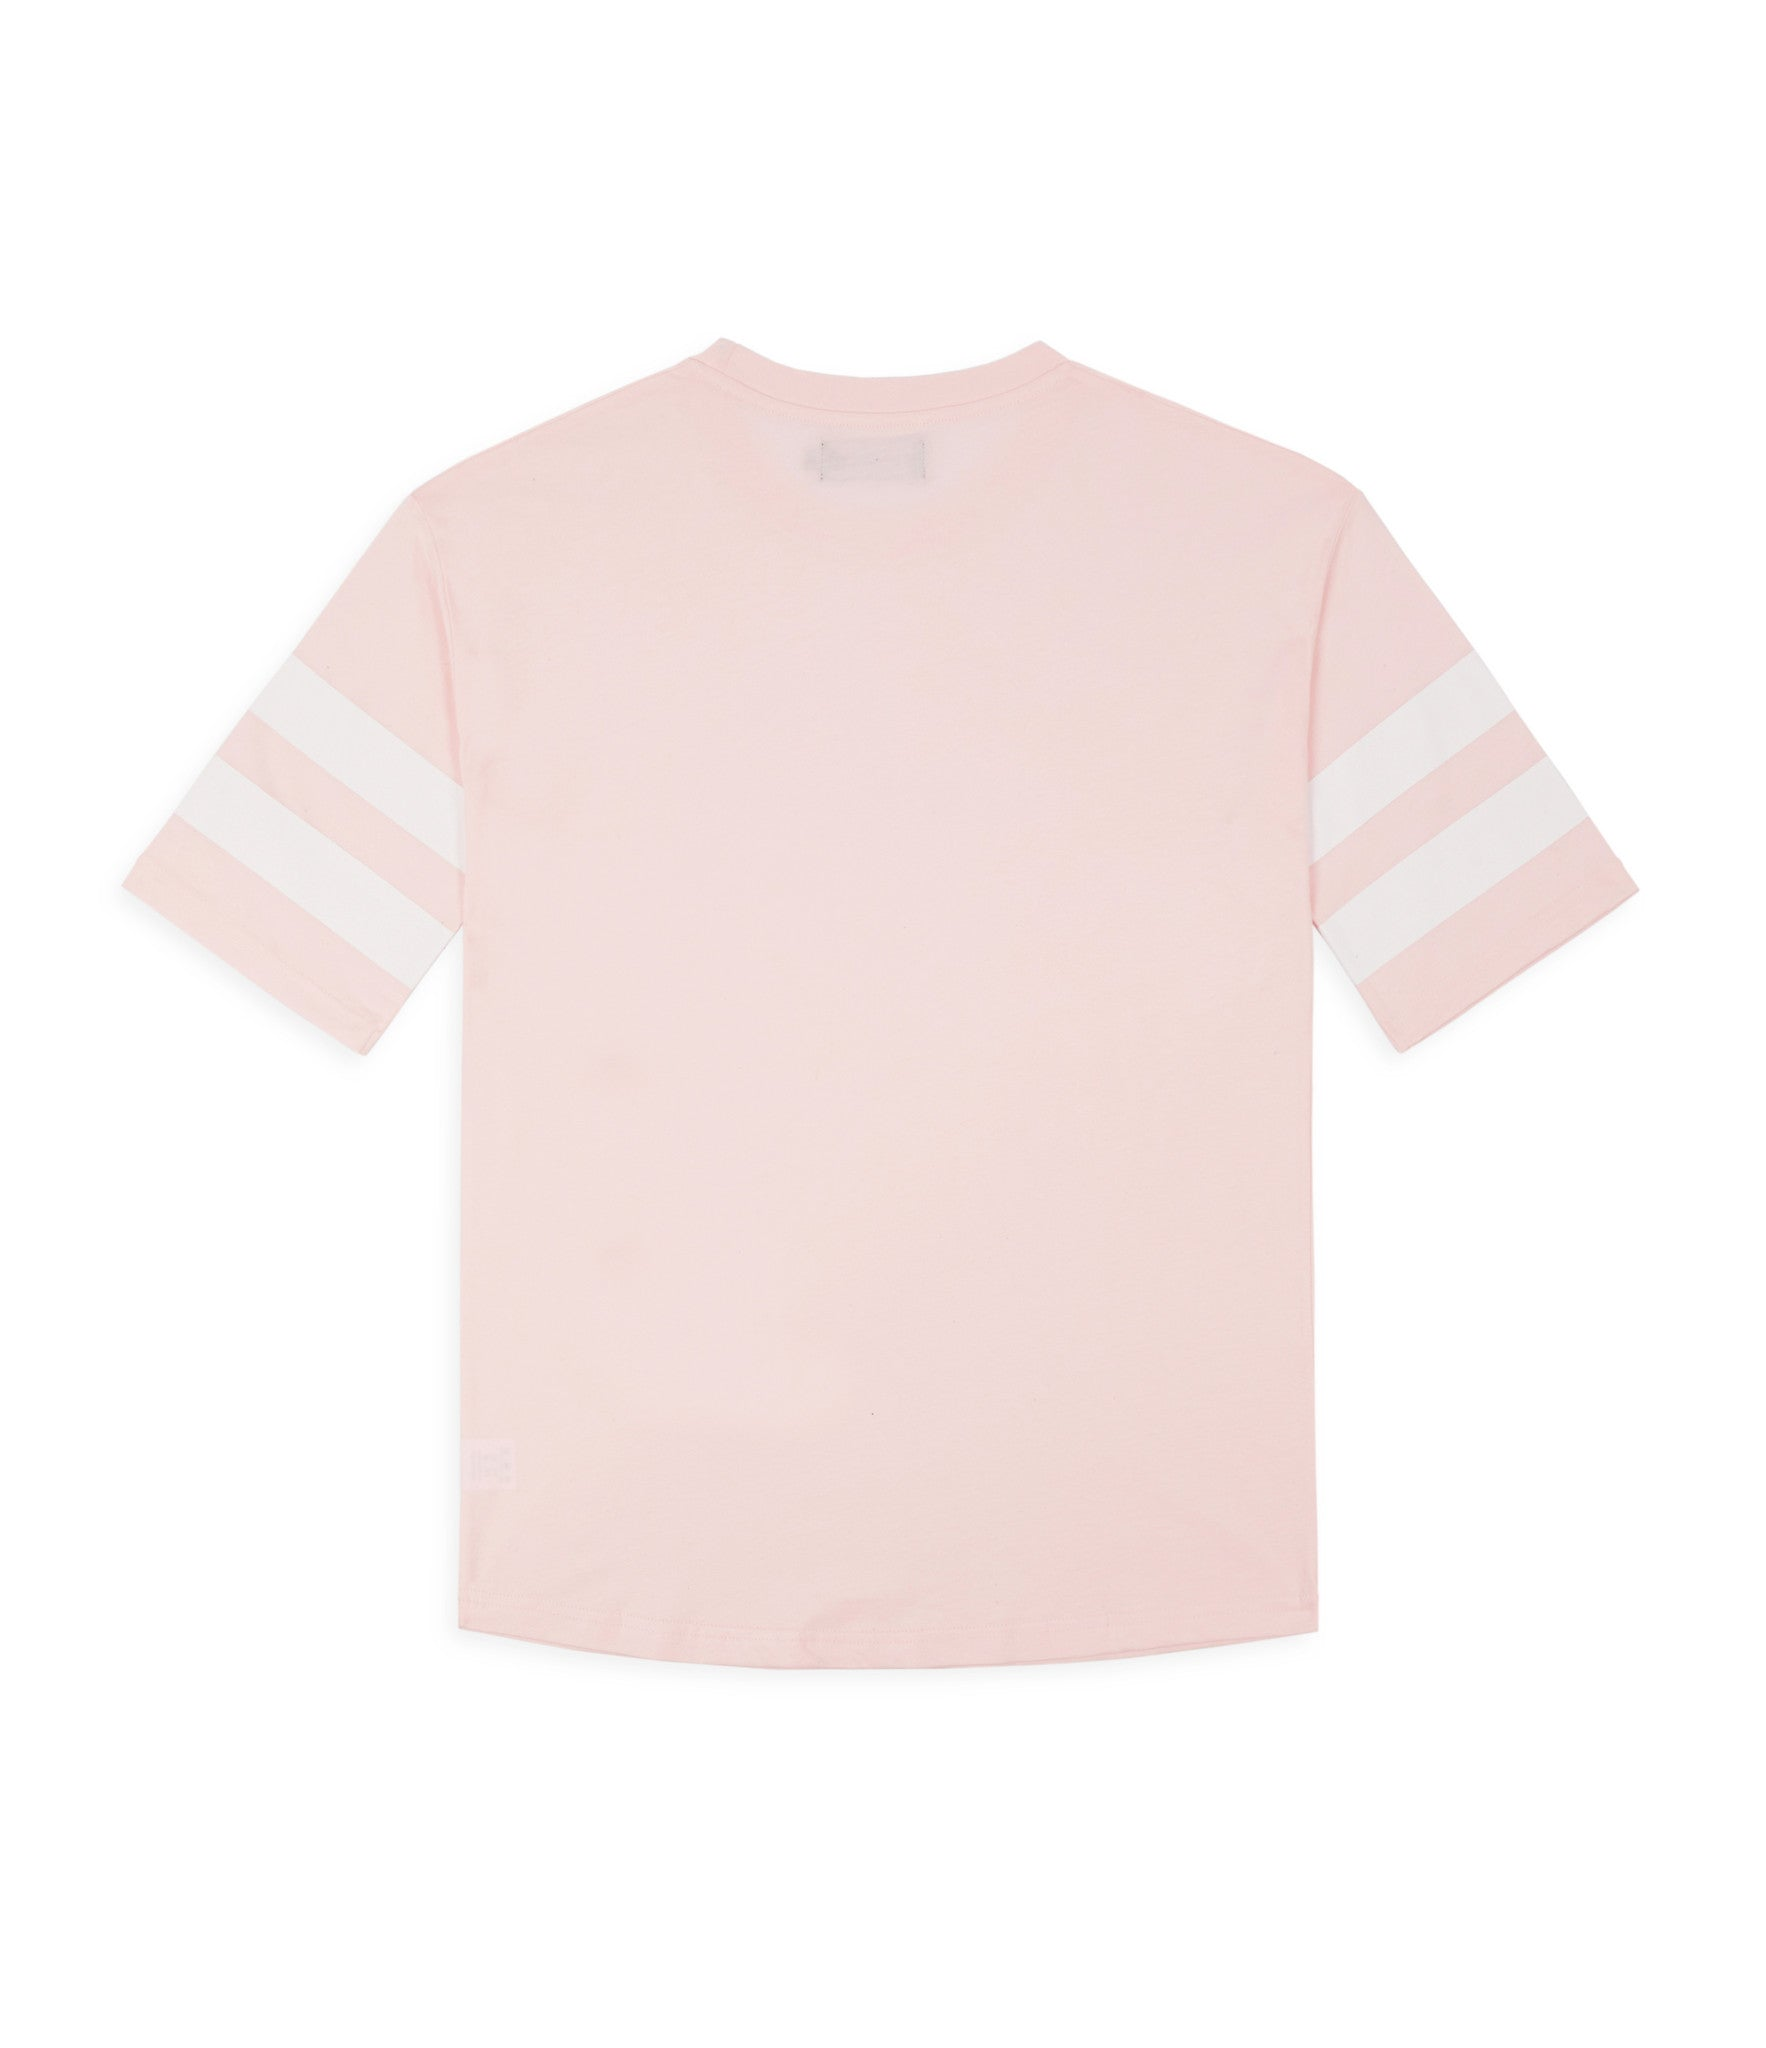 TS404 Print Tee - Pink - underated london - underatedco - 2